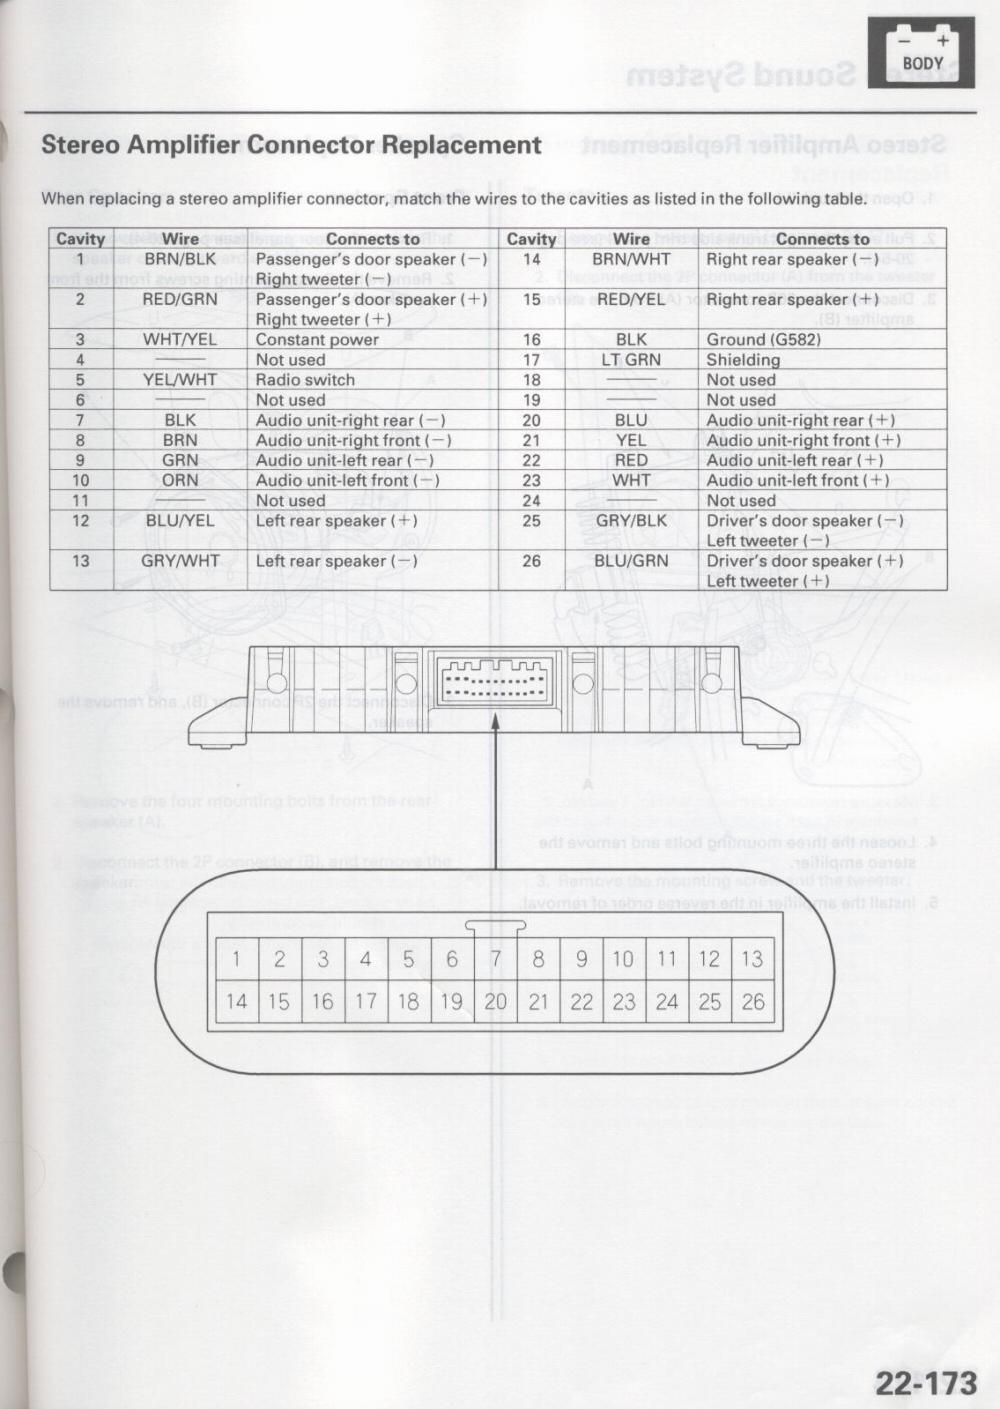 Acura 2002 TL car stereo amplifier wiring diagram harness car radio stereo audio wiring diagram autoradio connector wire 2012 chrysler 200 speaker wiring diagram at bakdesigns.co